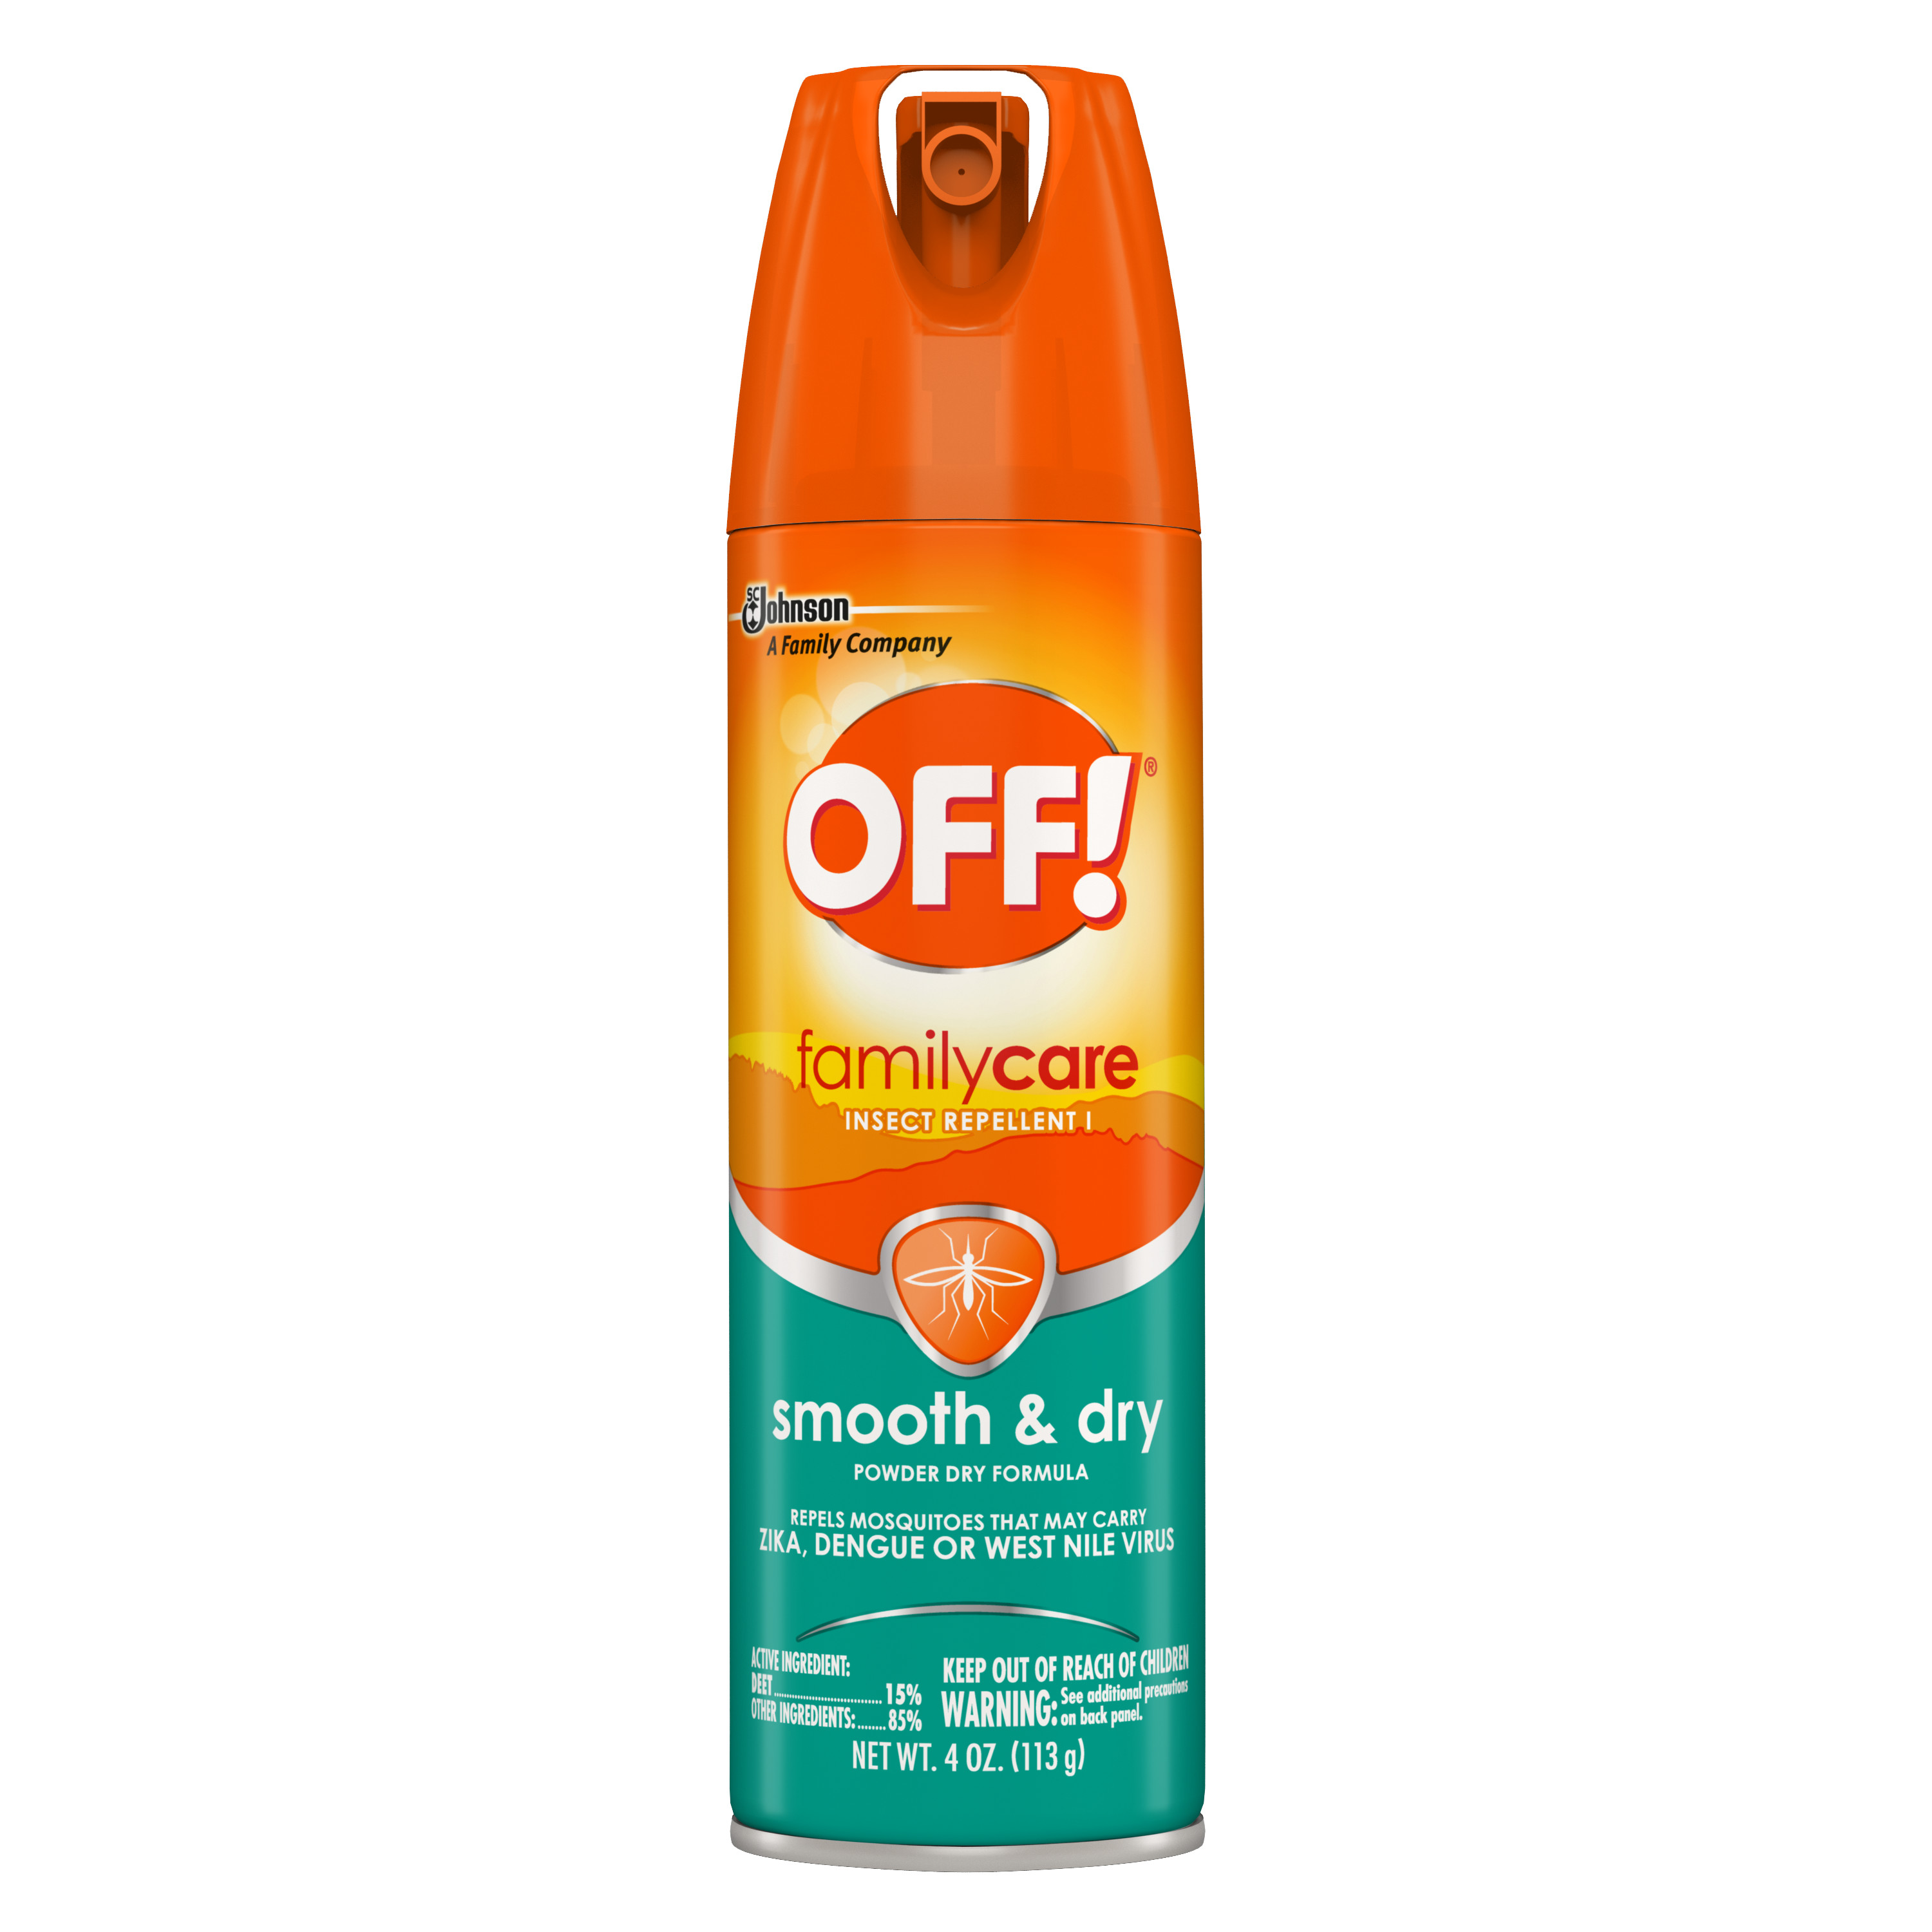 OFF! FamilyCare Insect Repellent I, Smooth & Dry, 4 oz, 1 ct